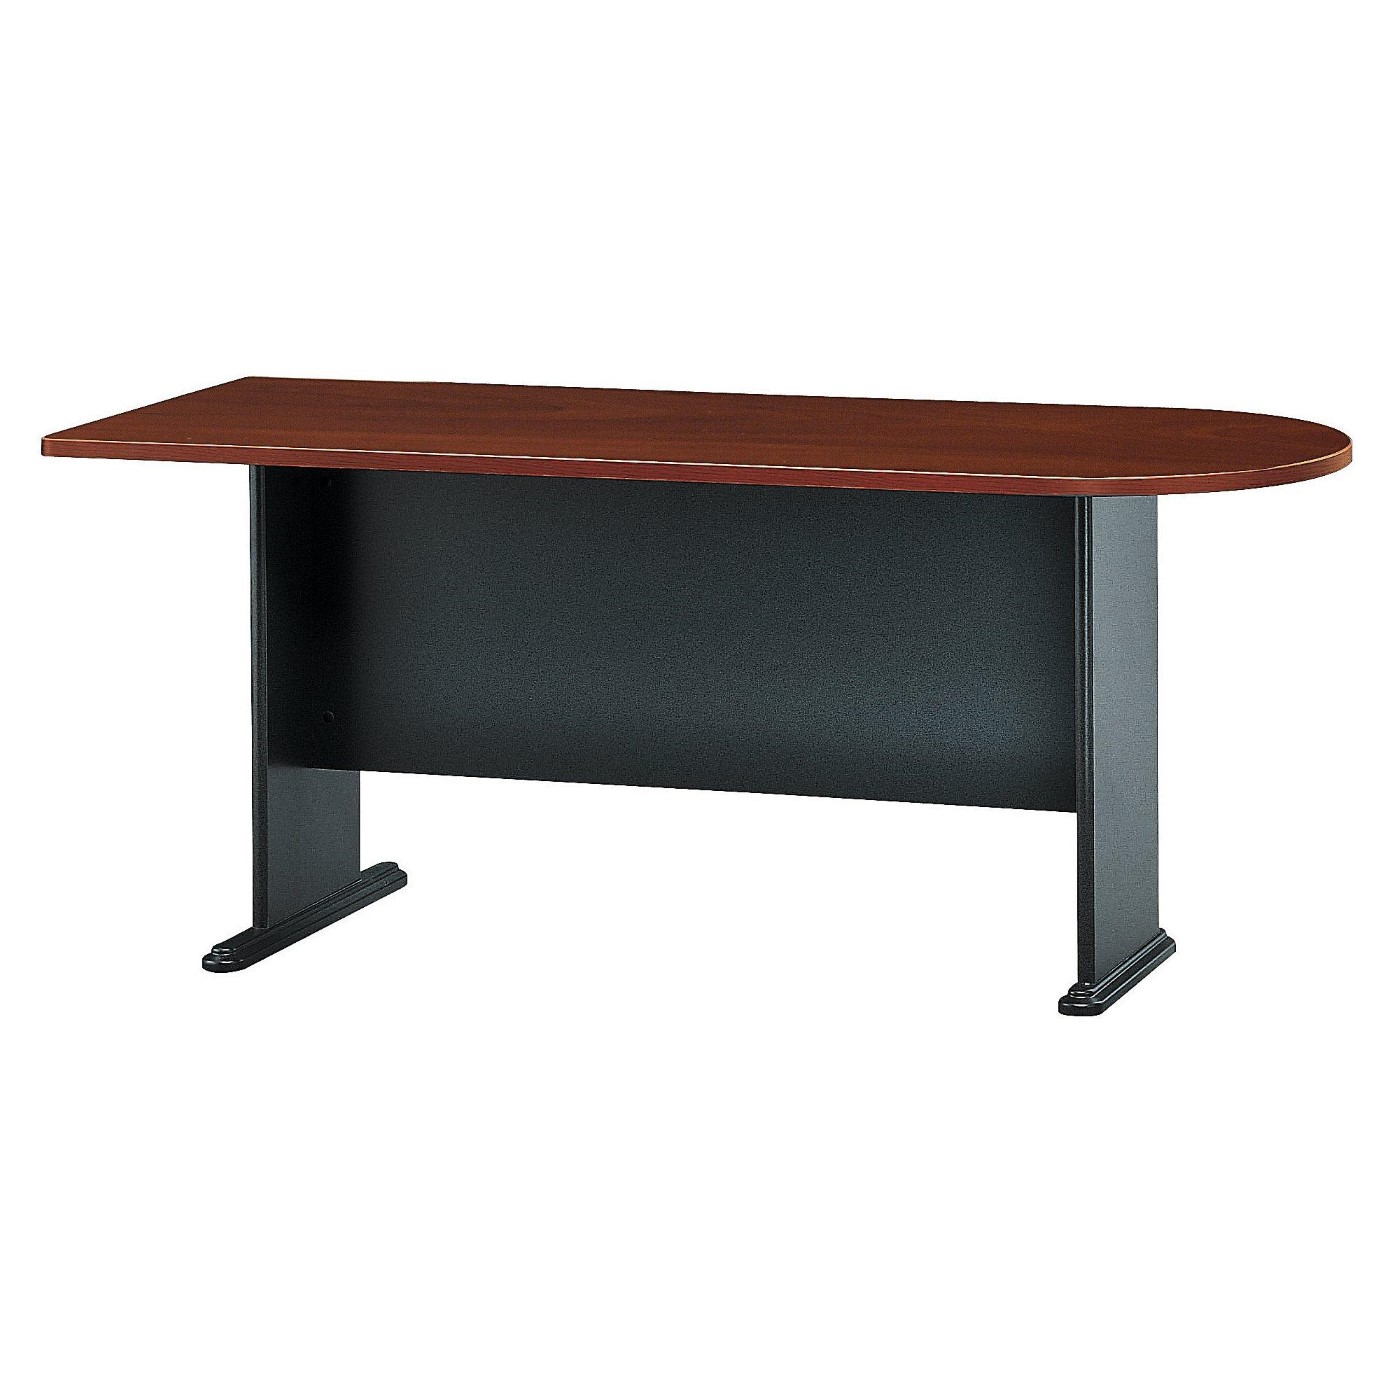 <font color=#c60><b>BUSH BUSINESS FURNITURE SERIES A 72W UNIVERSAL FREESTANDING PENINSULA. FREE SHIPPING</font></b>